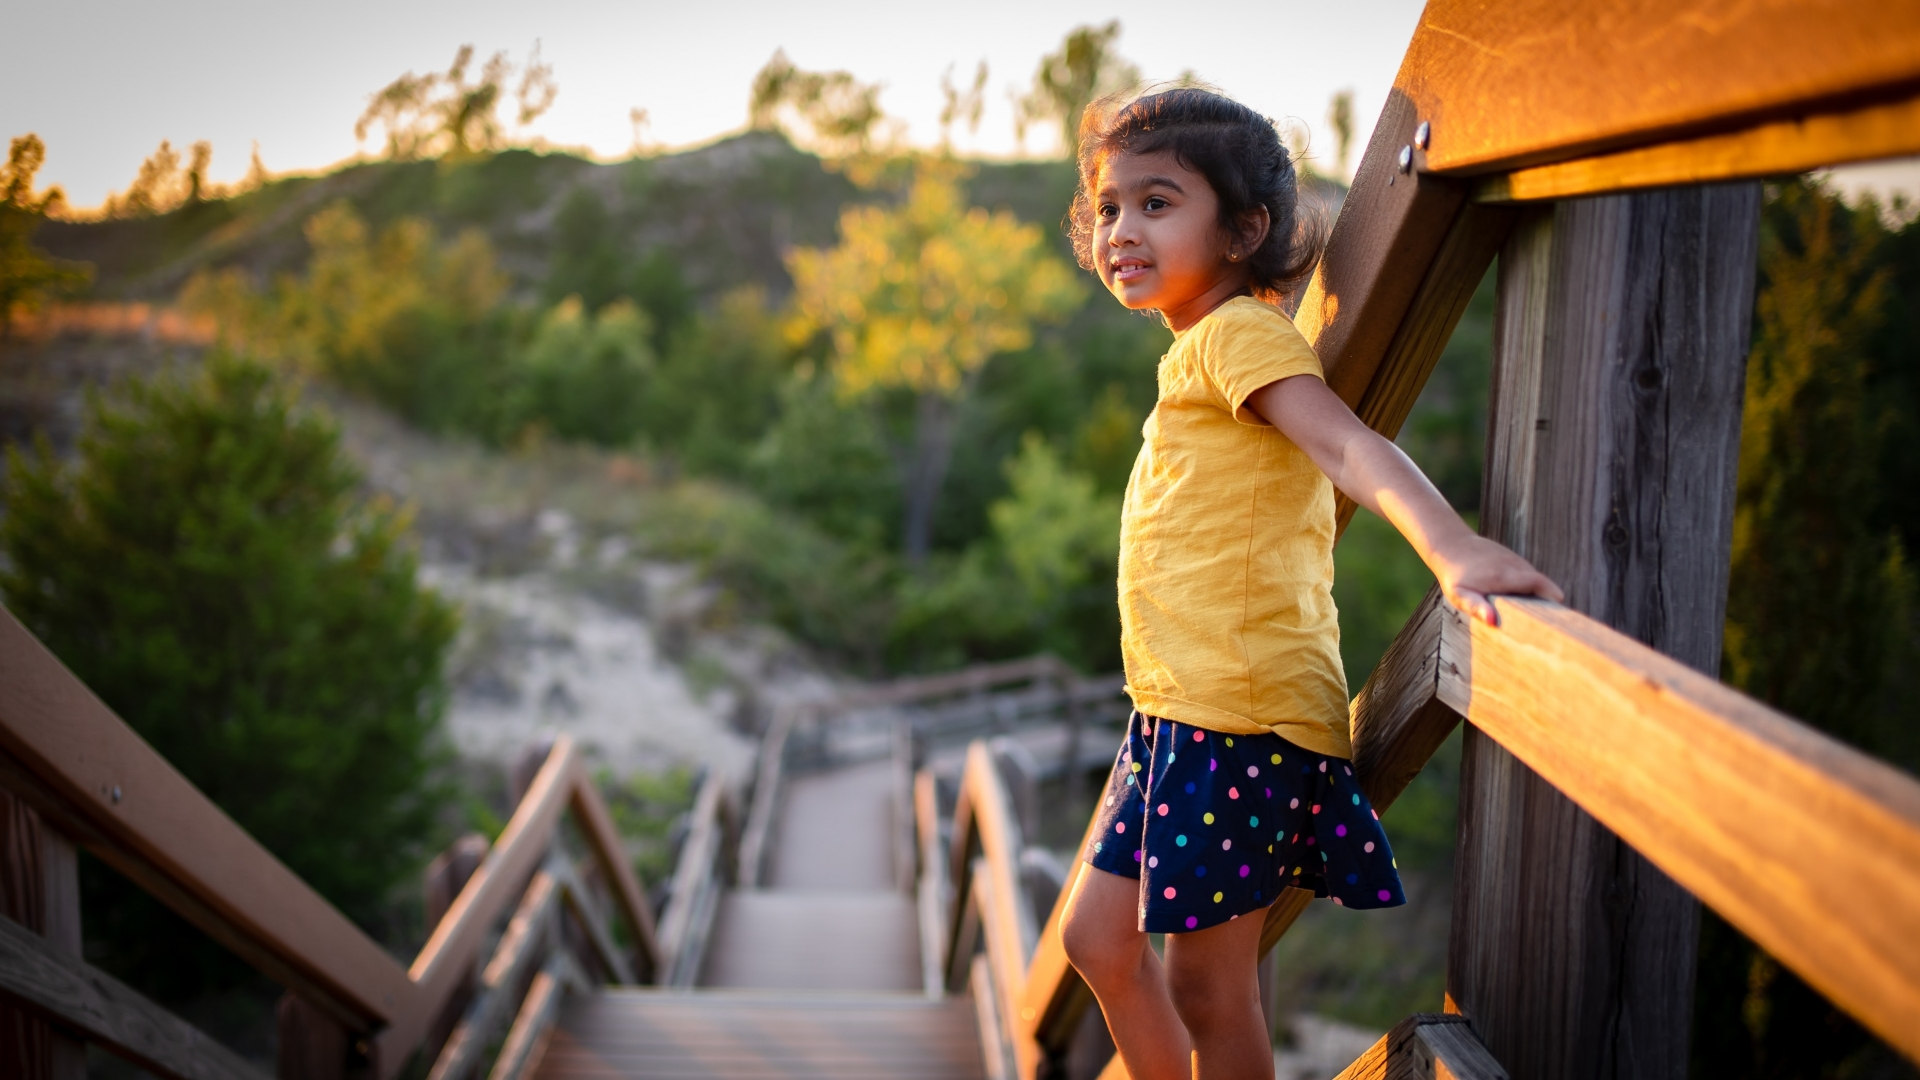 A young girl holds onto a wood pathway's guide rail and looks out onto a sunset scene